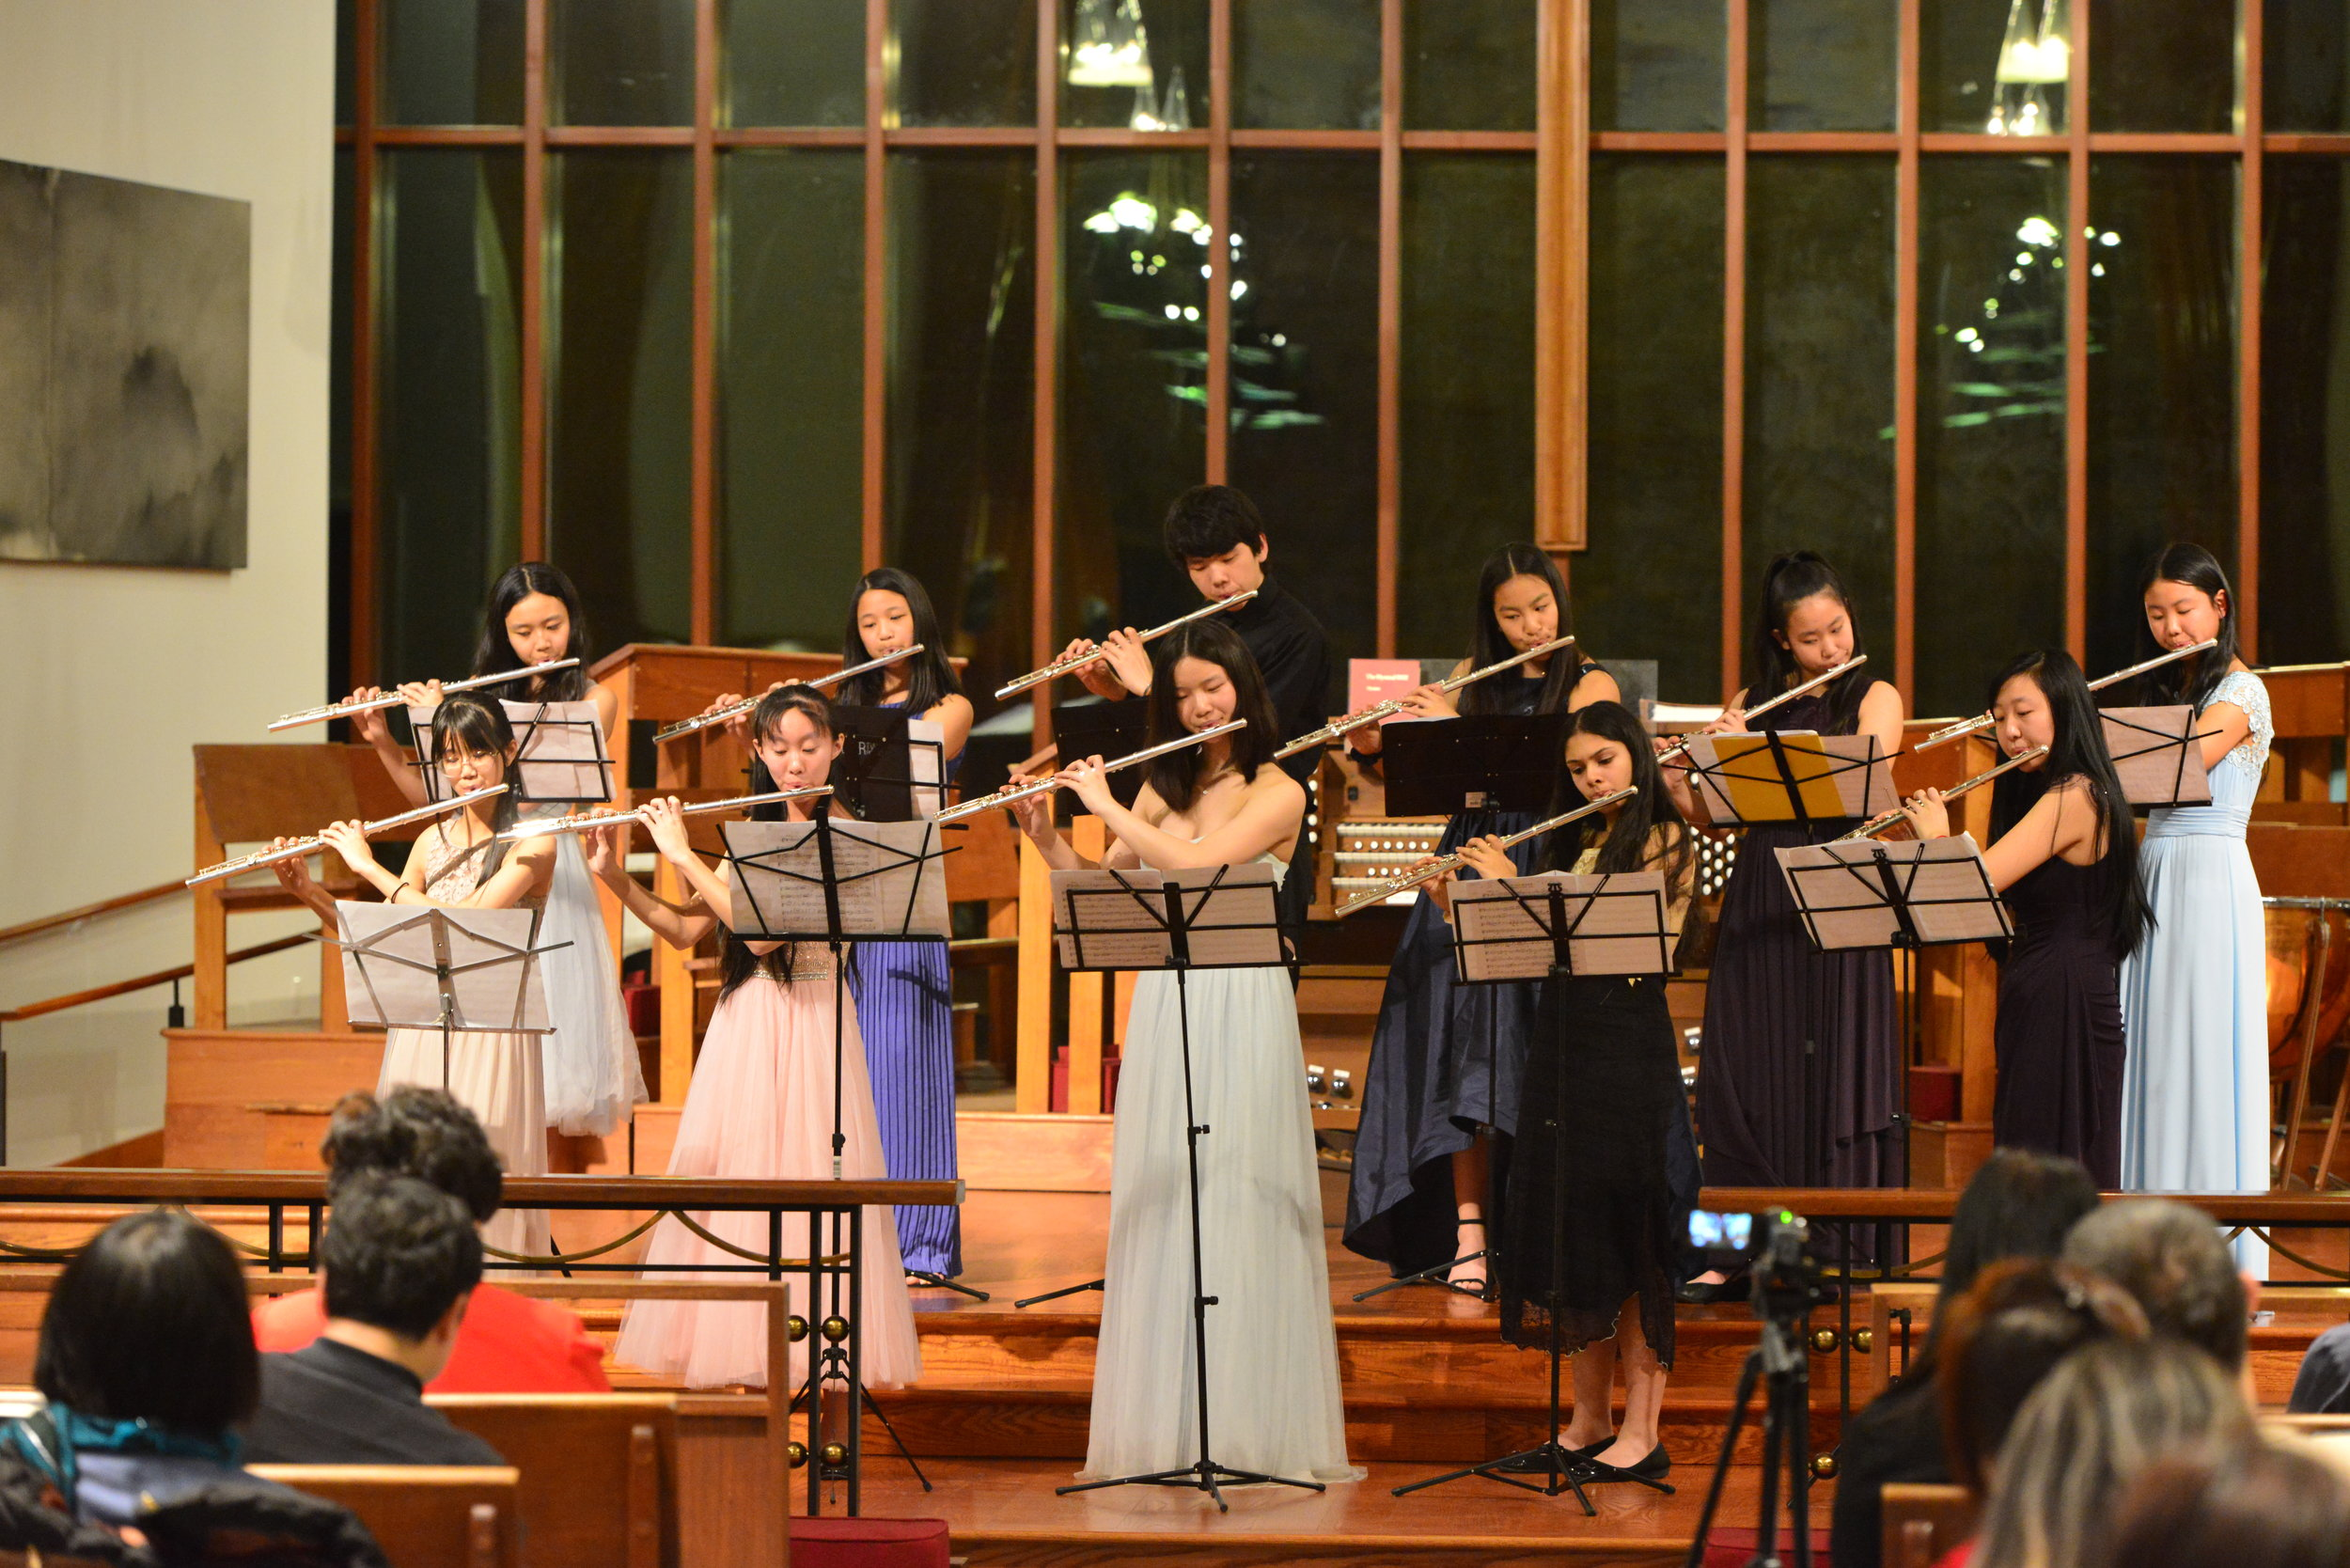 Flute Choir performing The Arrival of Queen of Sheba by G.F. Handel